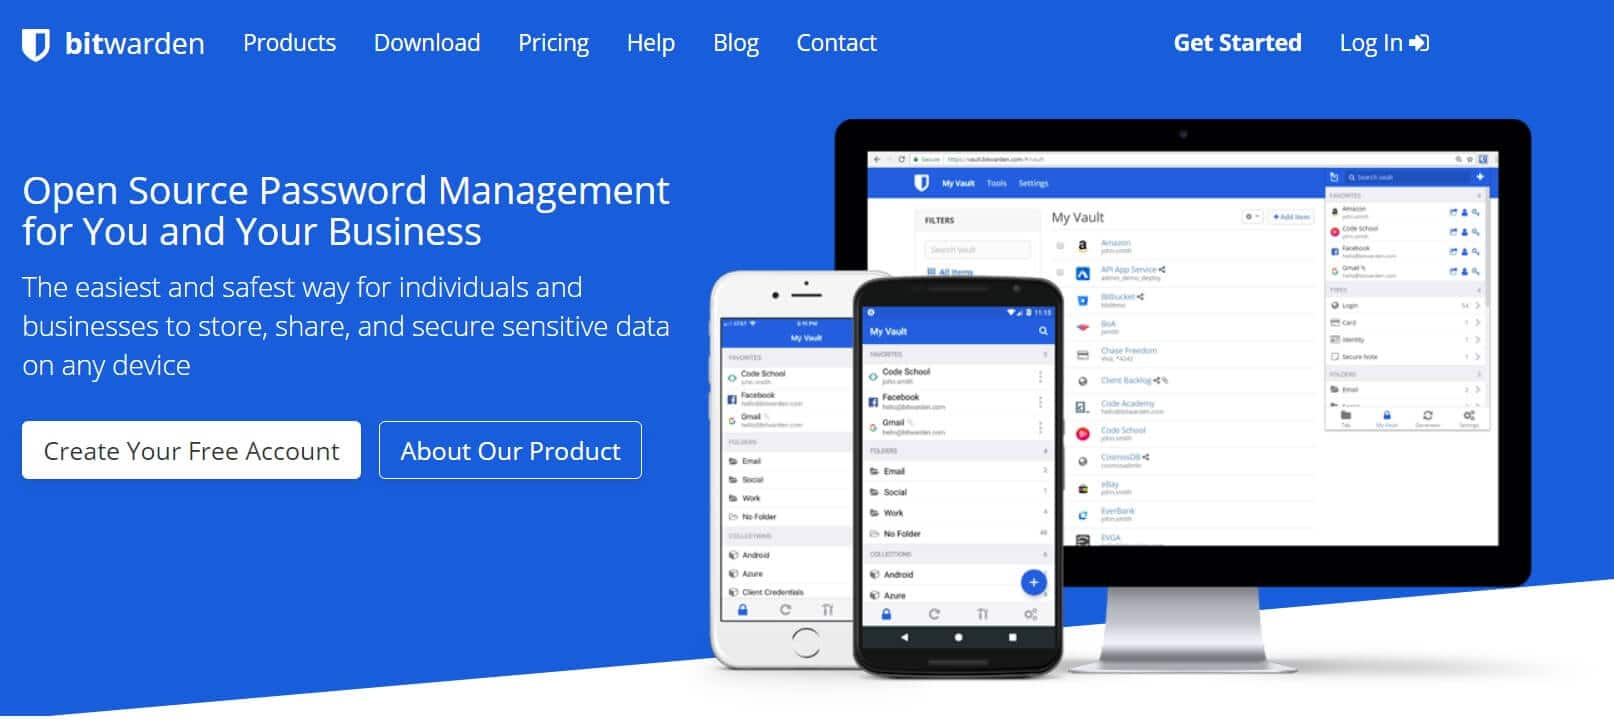 13 Best Free Password Manager Software (2021)